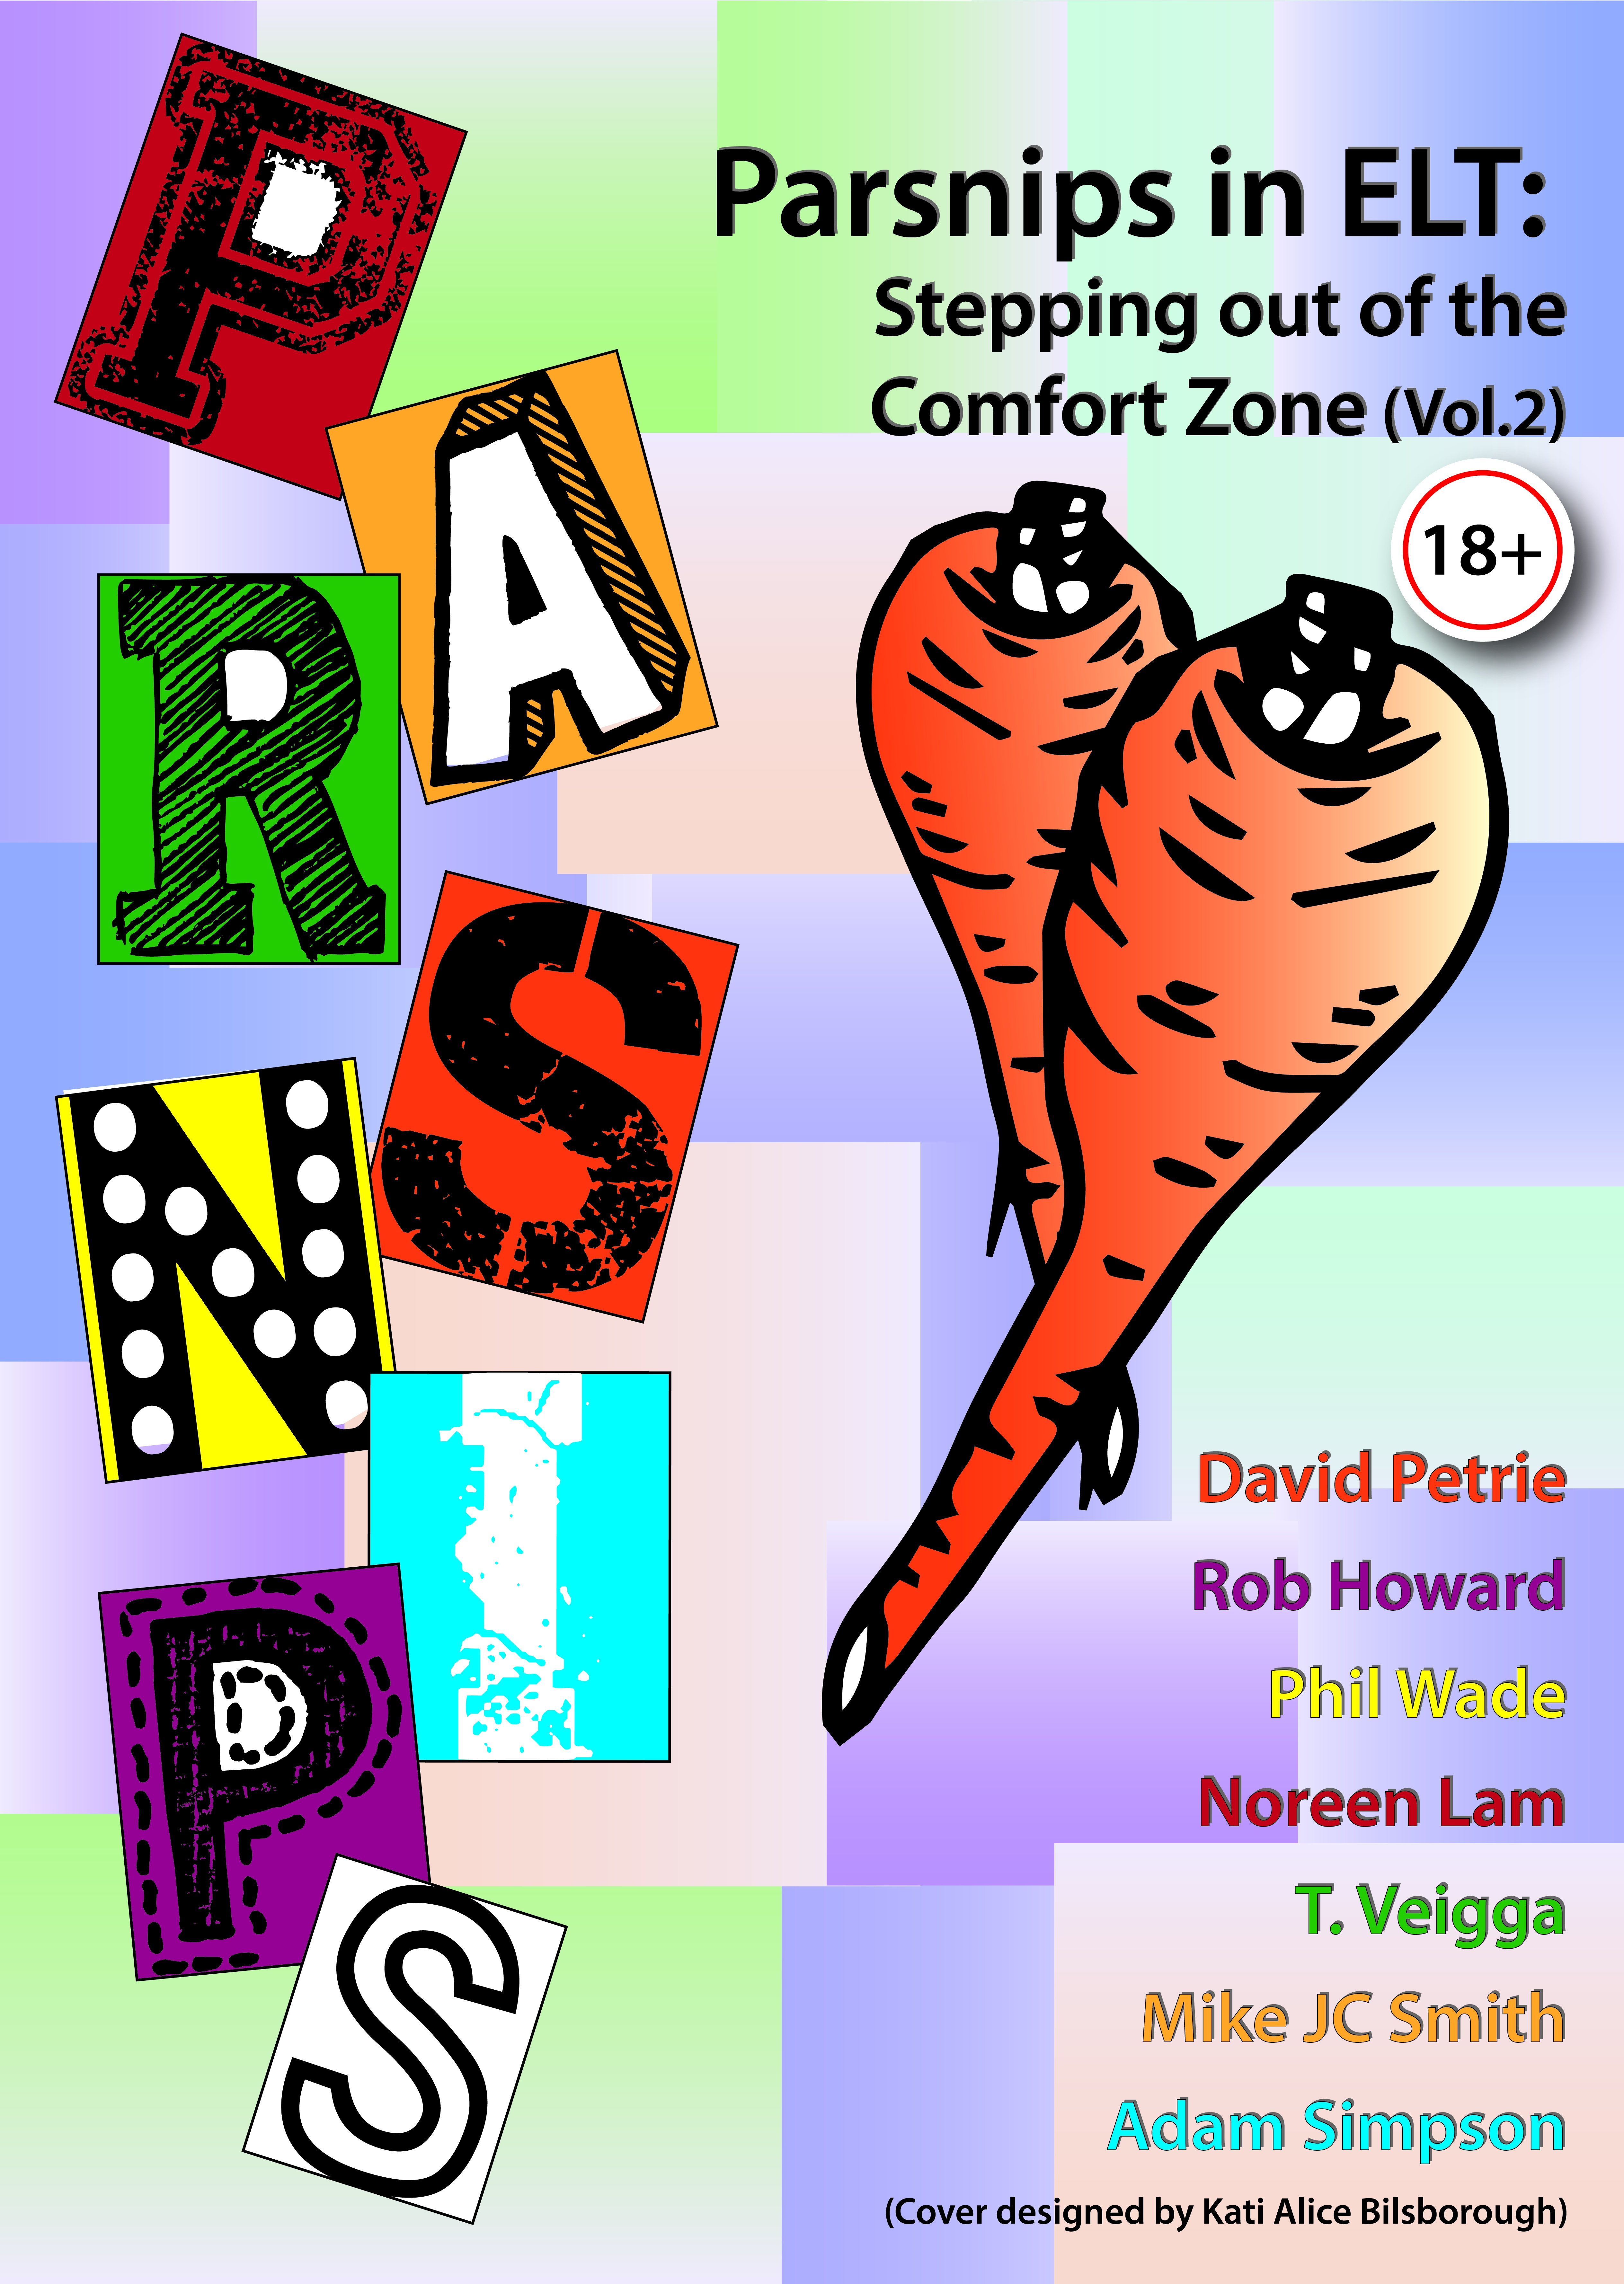 Introducing our free new ebook – Parsnips in ELT: Stepping out of the comfort zone (Vol. 2)